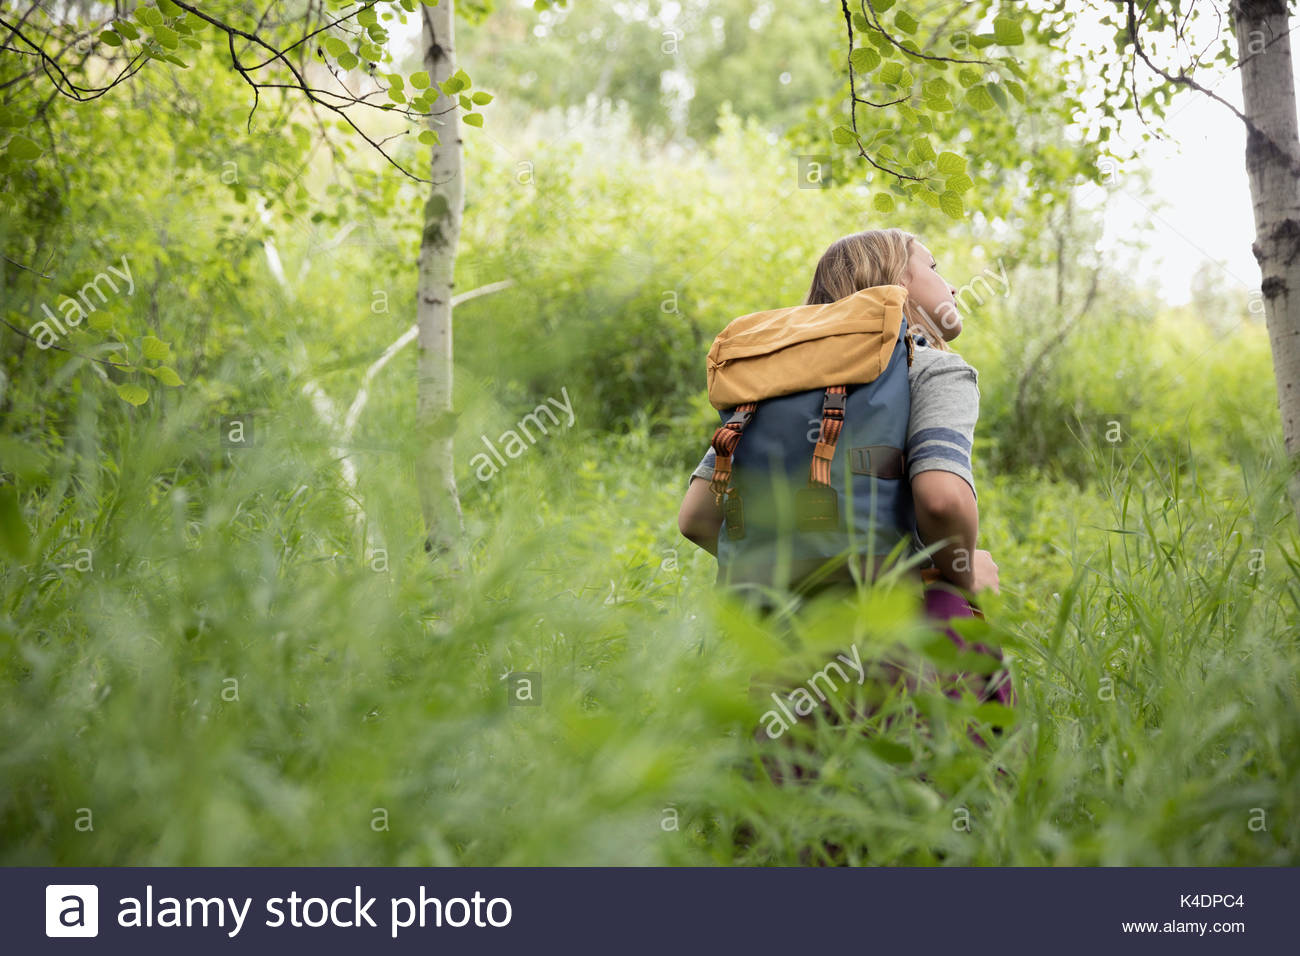 Curious teenage girl with backpack hiking in tall grass in woods - Stock Image